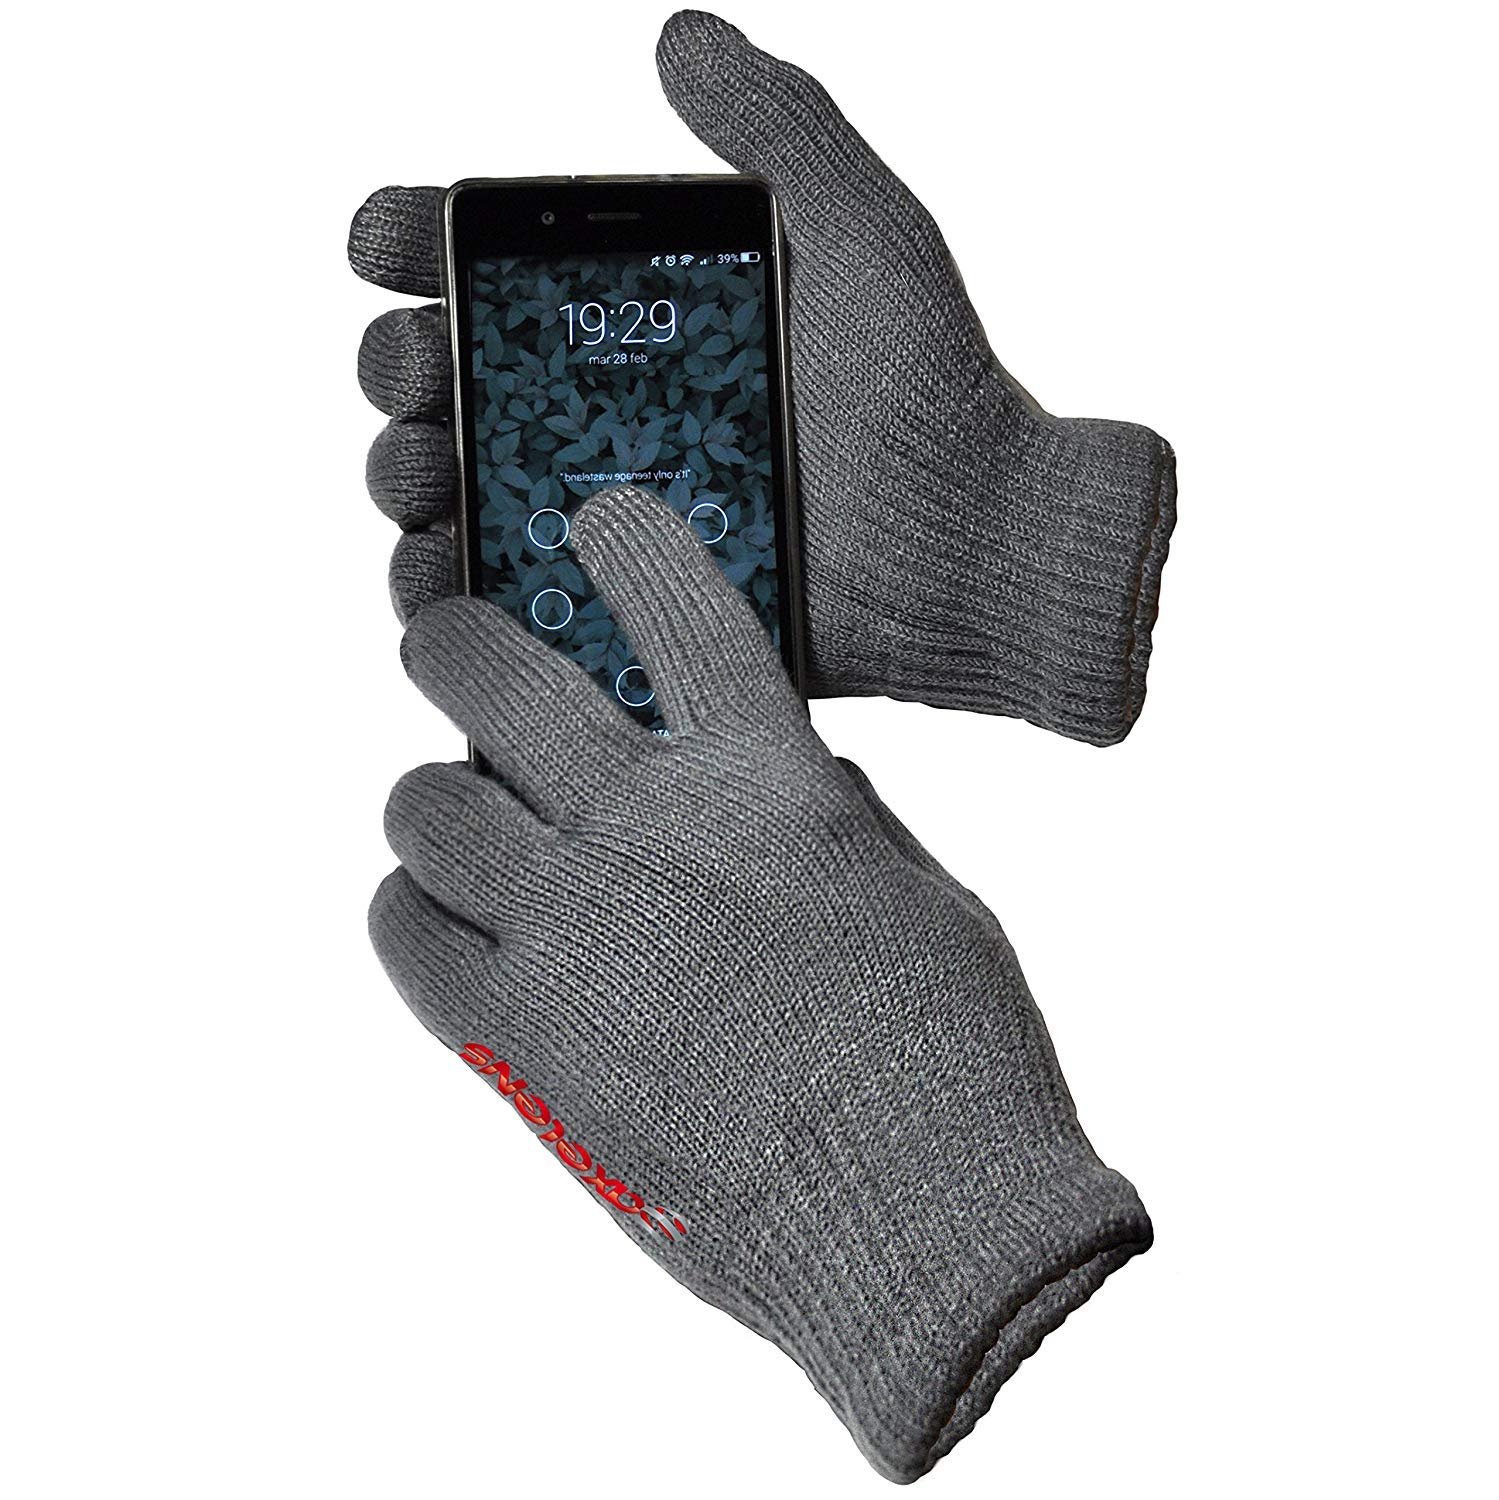 Plush Interior AXELENS Capacitive Touch Screen Gloves For Smartphone ORANGE Unisex Universal